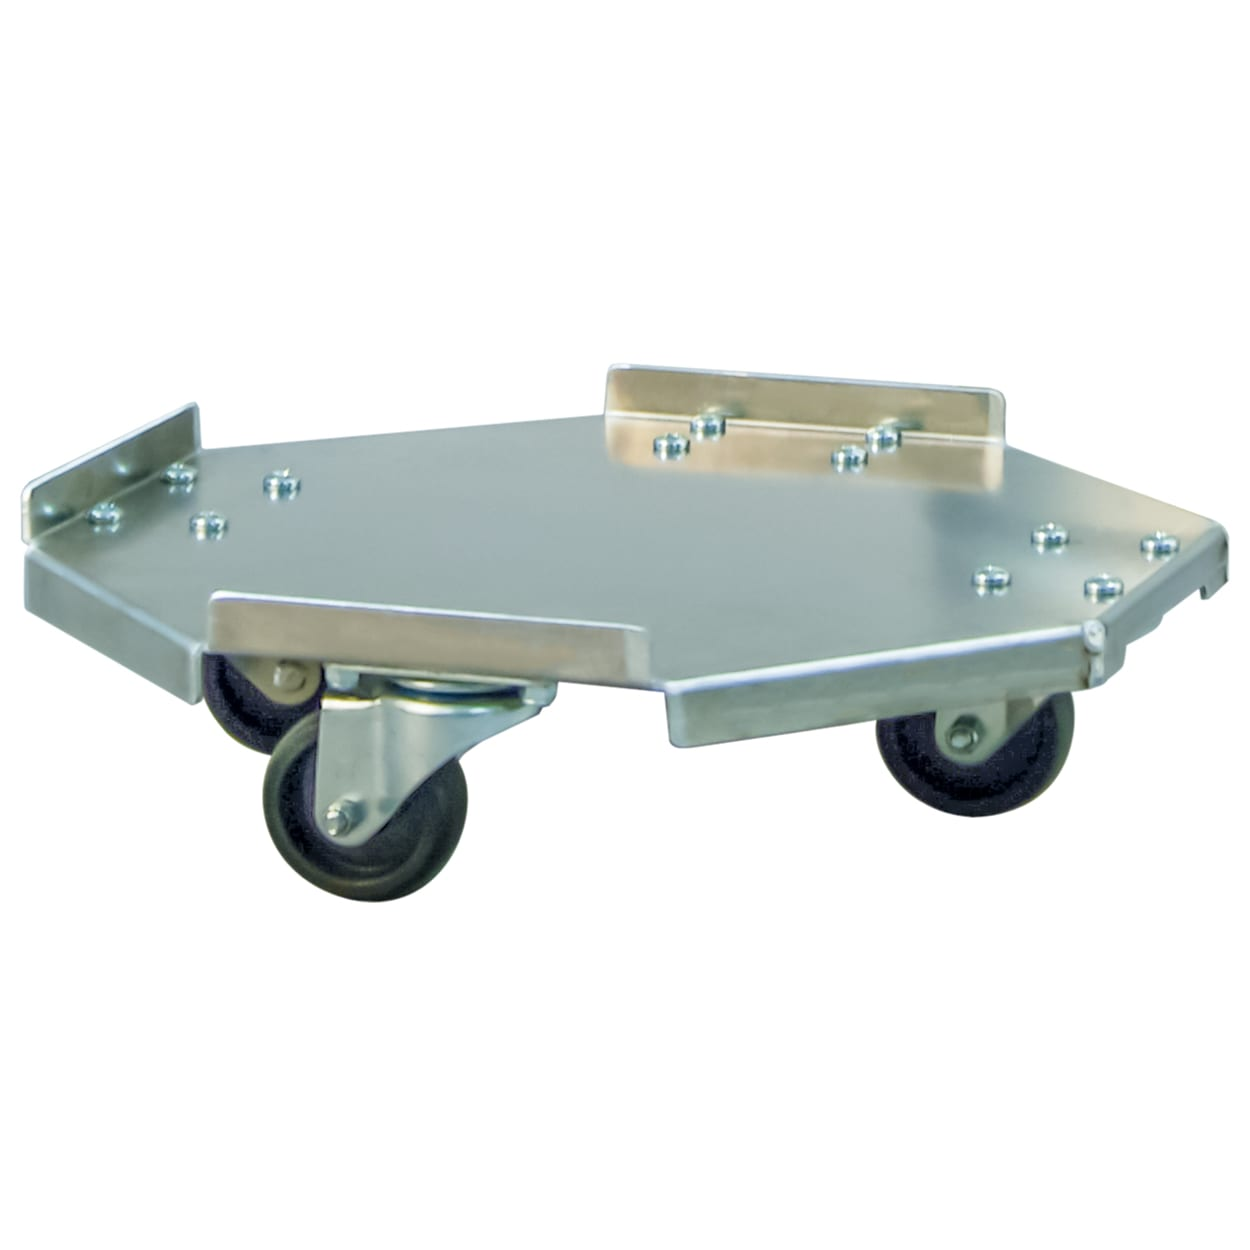 New Age 98037 Dolly for Keg w/ 175-lb Capacity